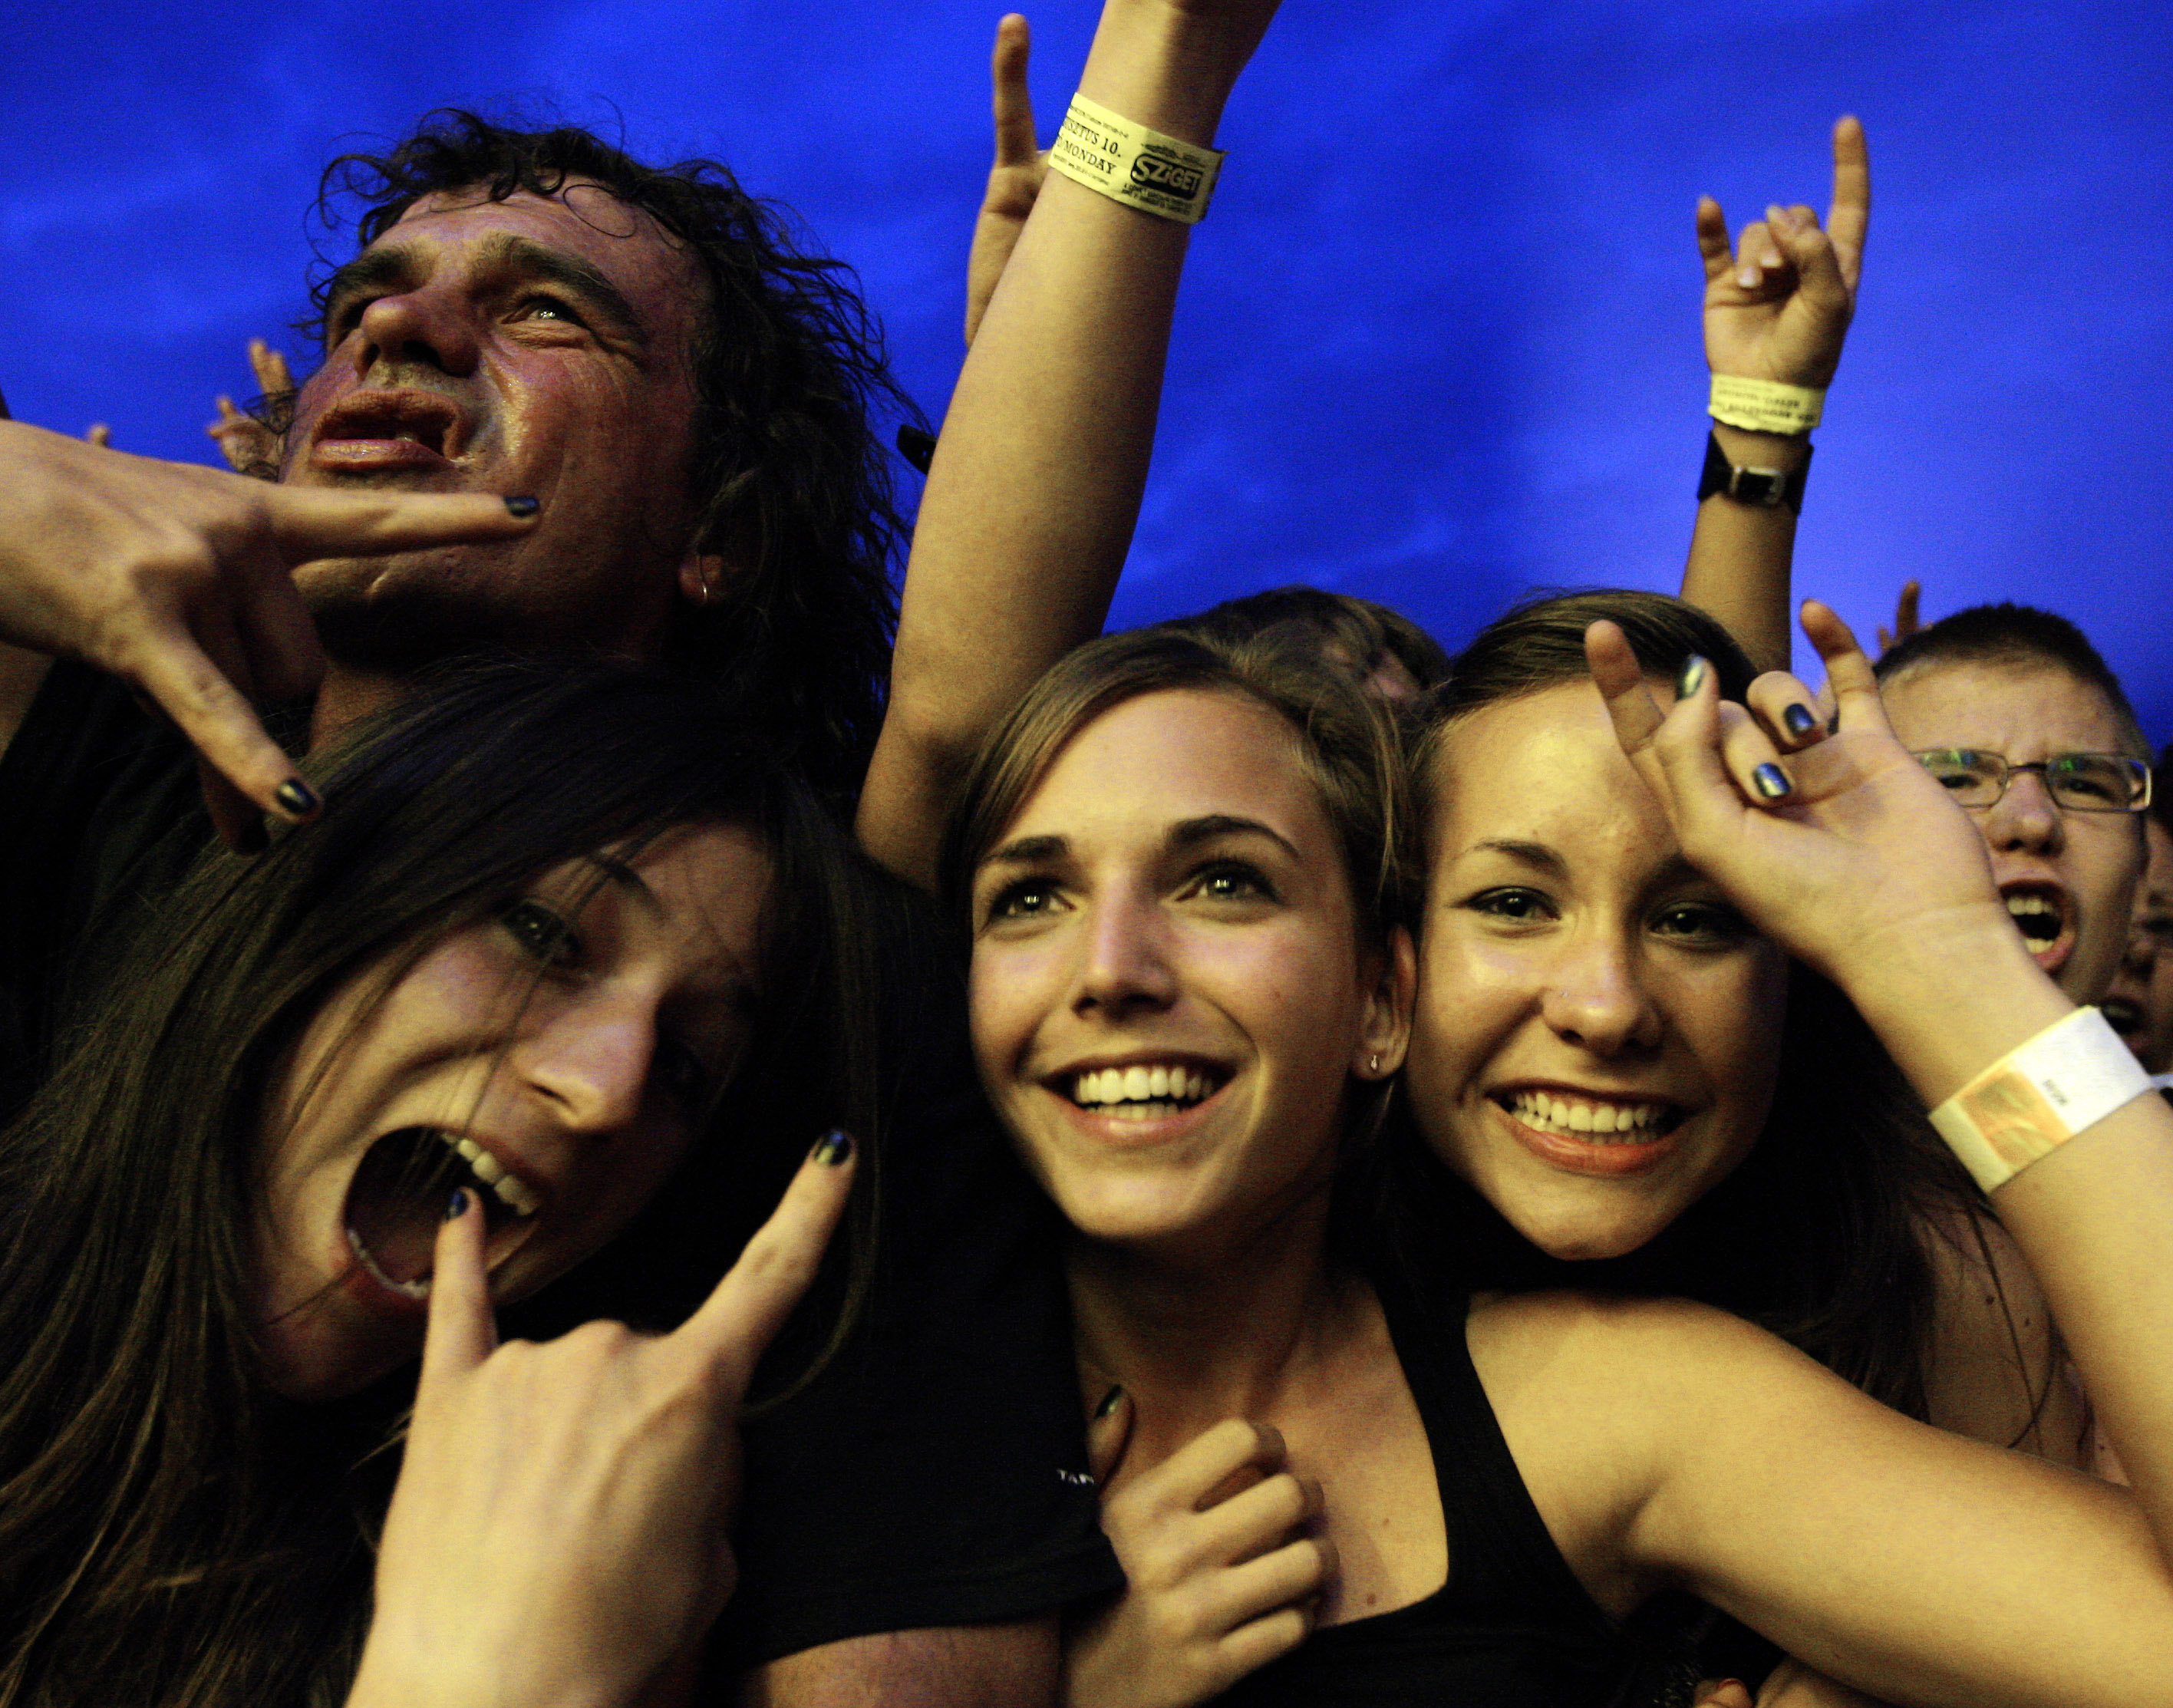 Revellers attend a concert by Hungarian metal band  Tankcsapda  during Budapest's one-week, round-the-clock Sziget ('Island') music festival on an island in the Danube river August 10, 2009.